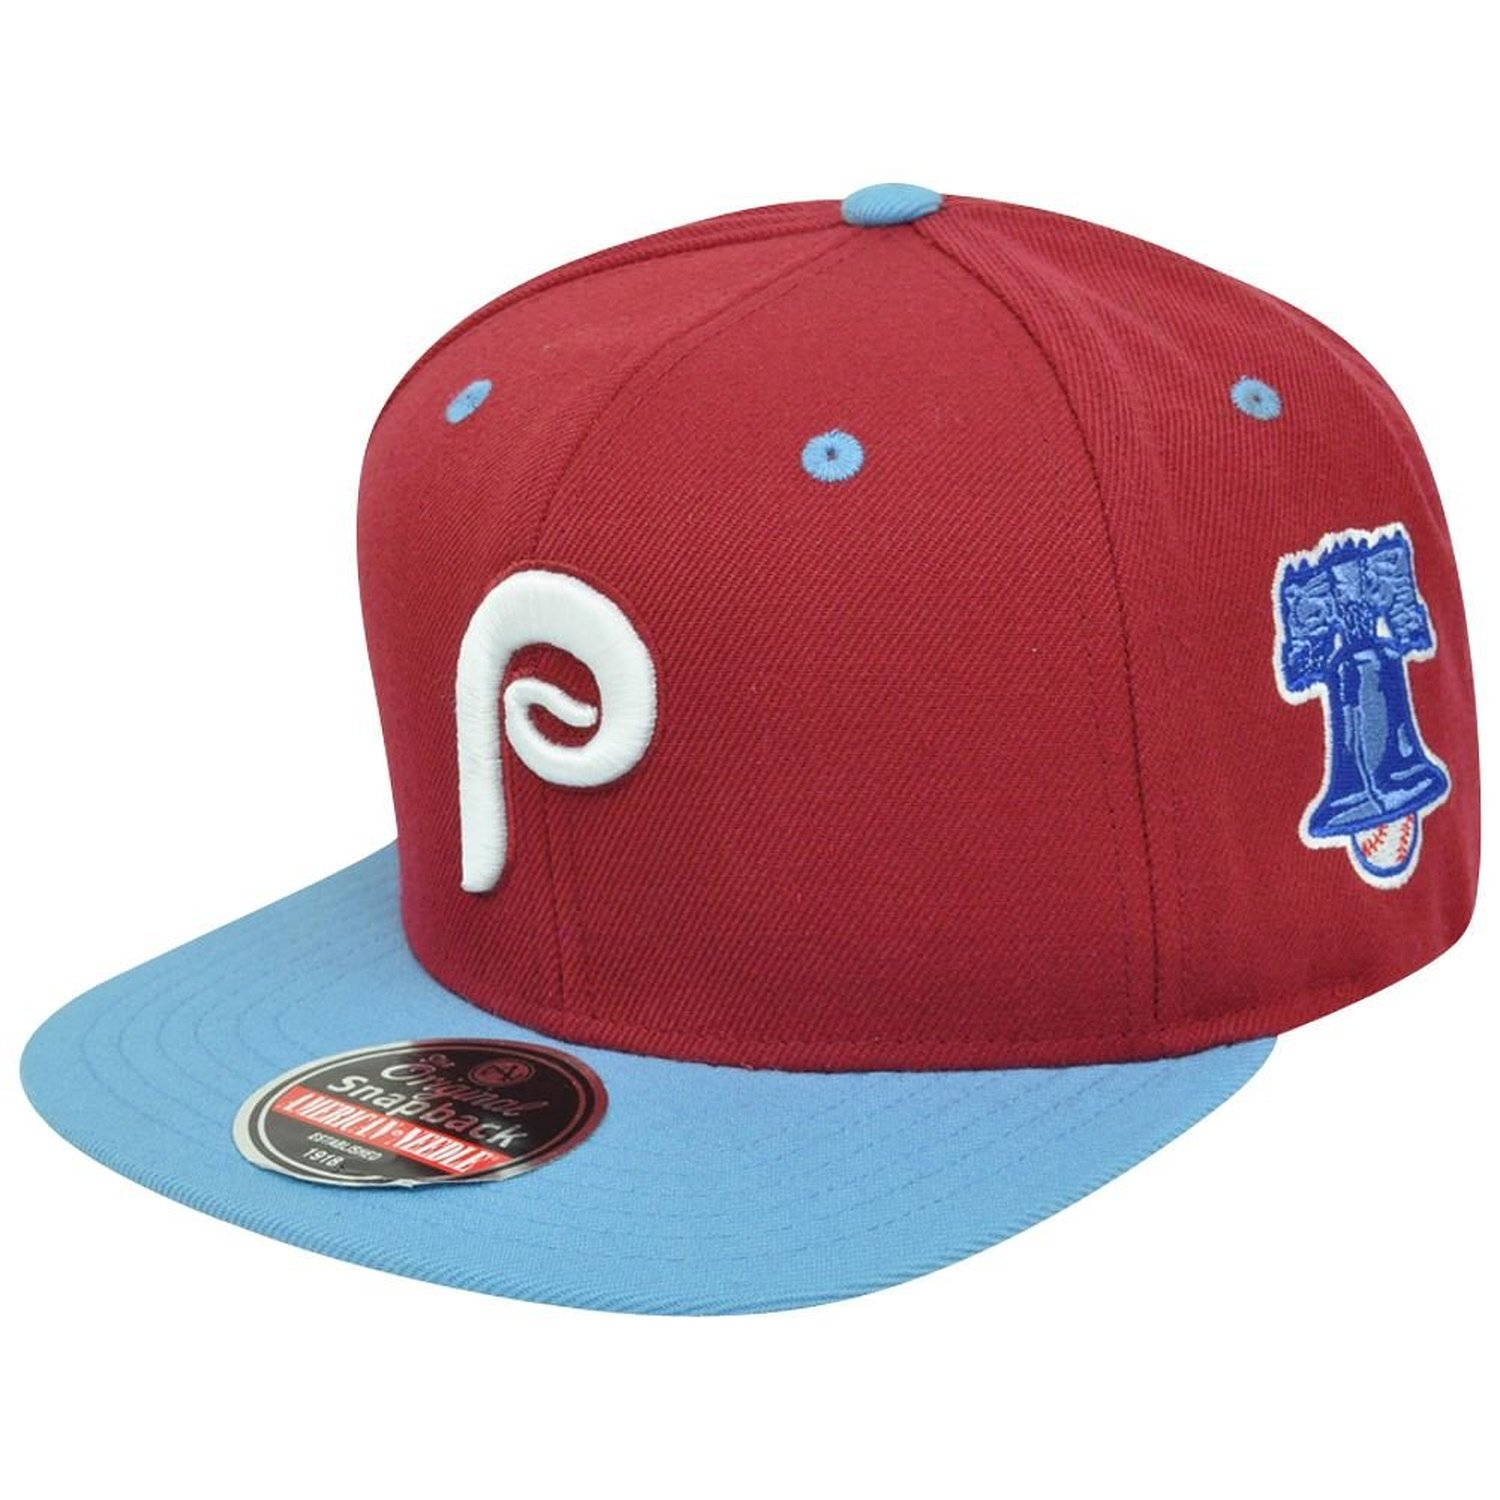 Get Quotations · American Needle Blockhead Philadelphia Phillies Snapback  Hat Maroon 66a6a0f31144